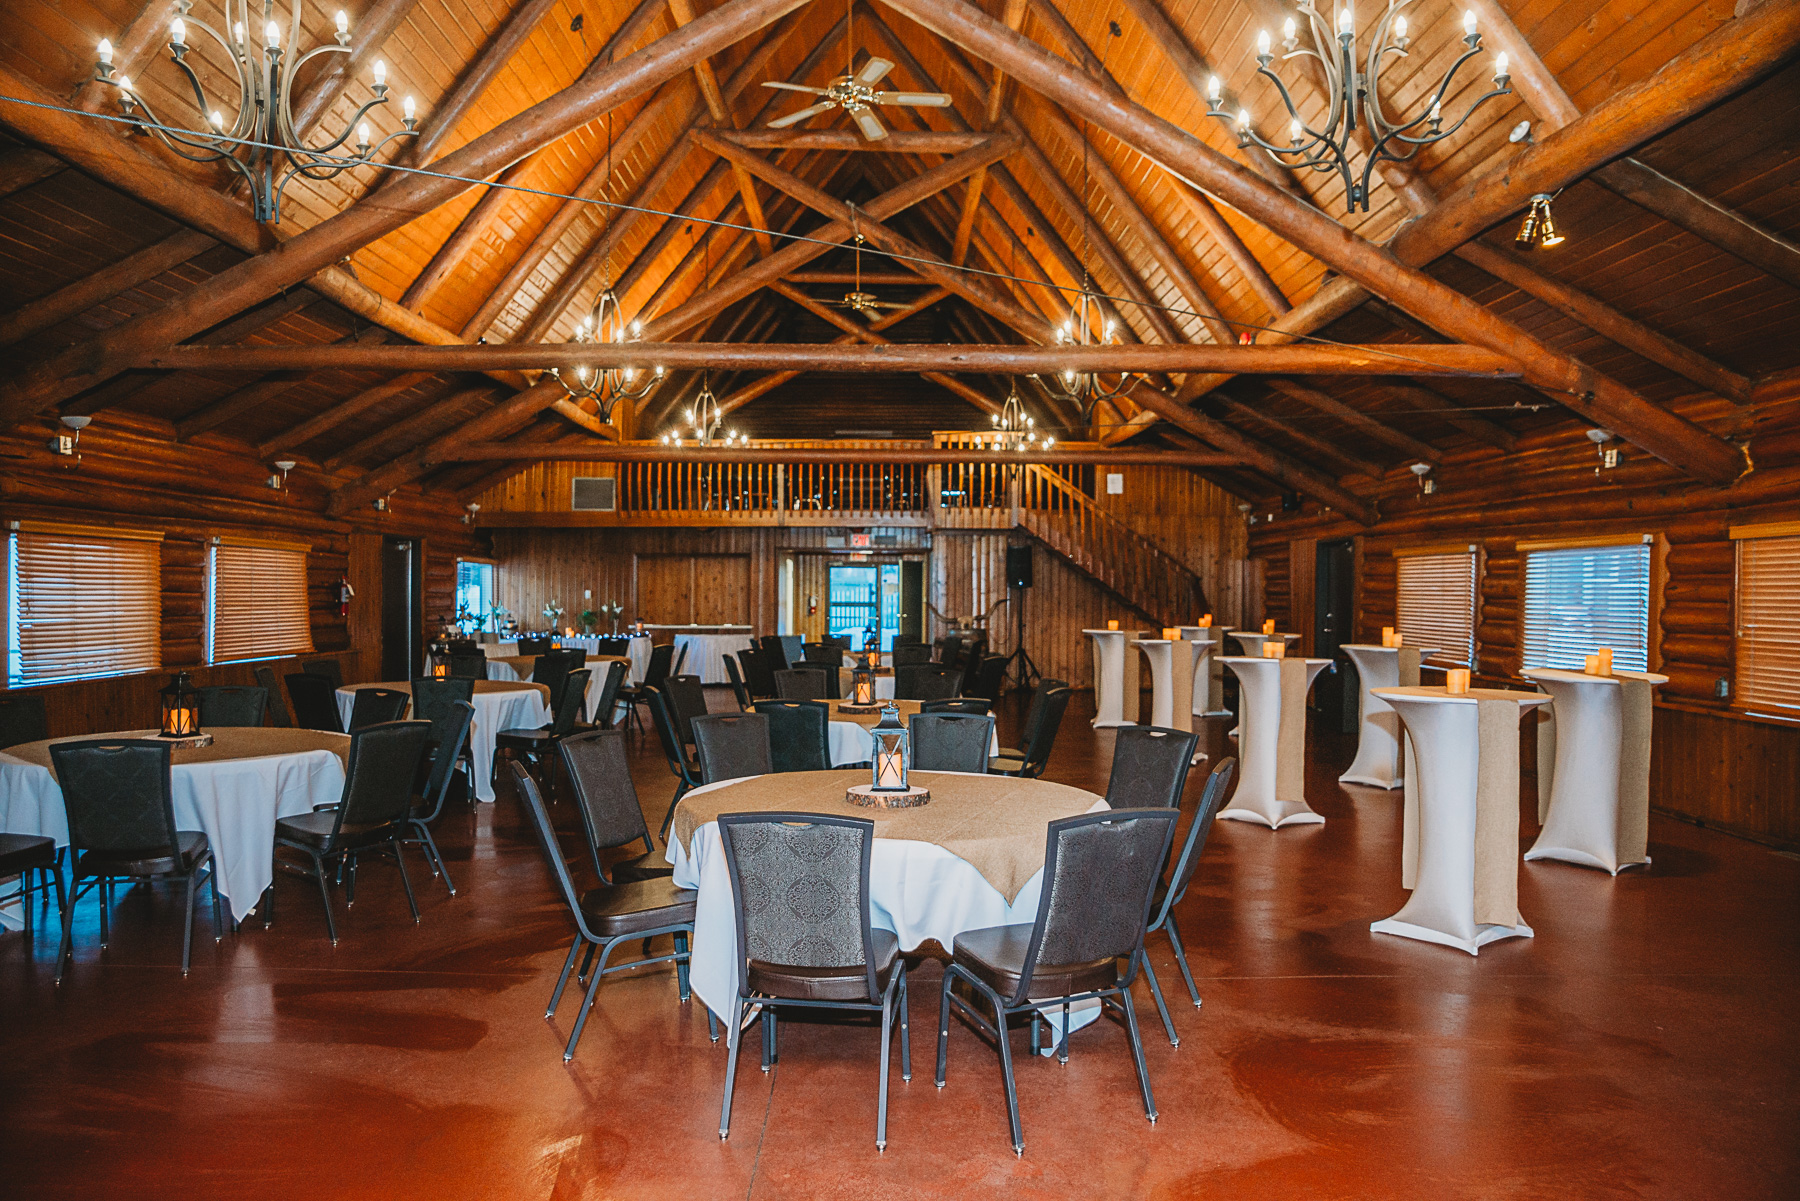 Westerner Park Holiday Inn Chalet